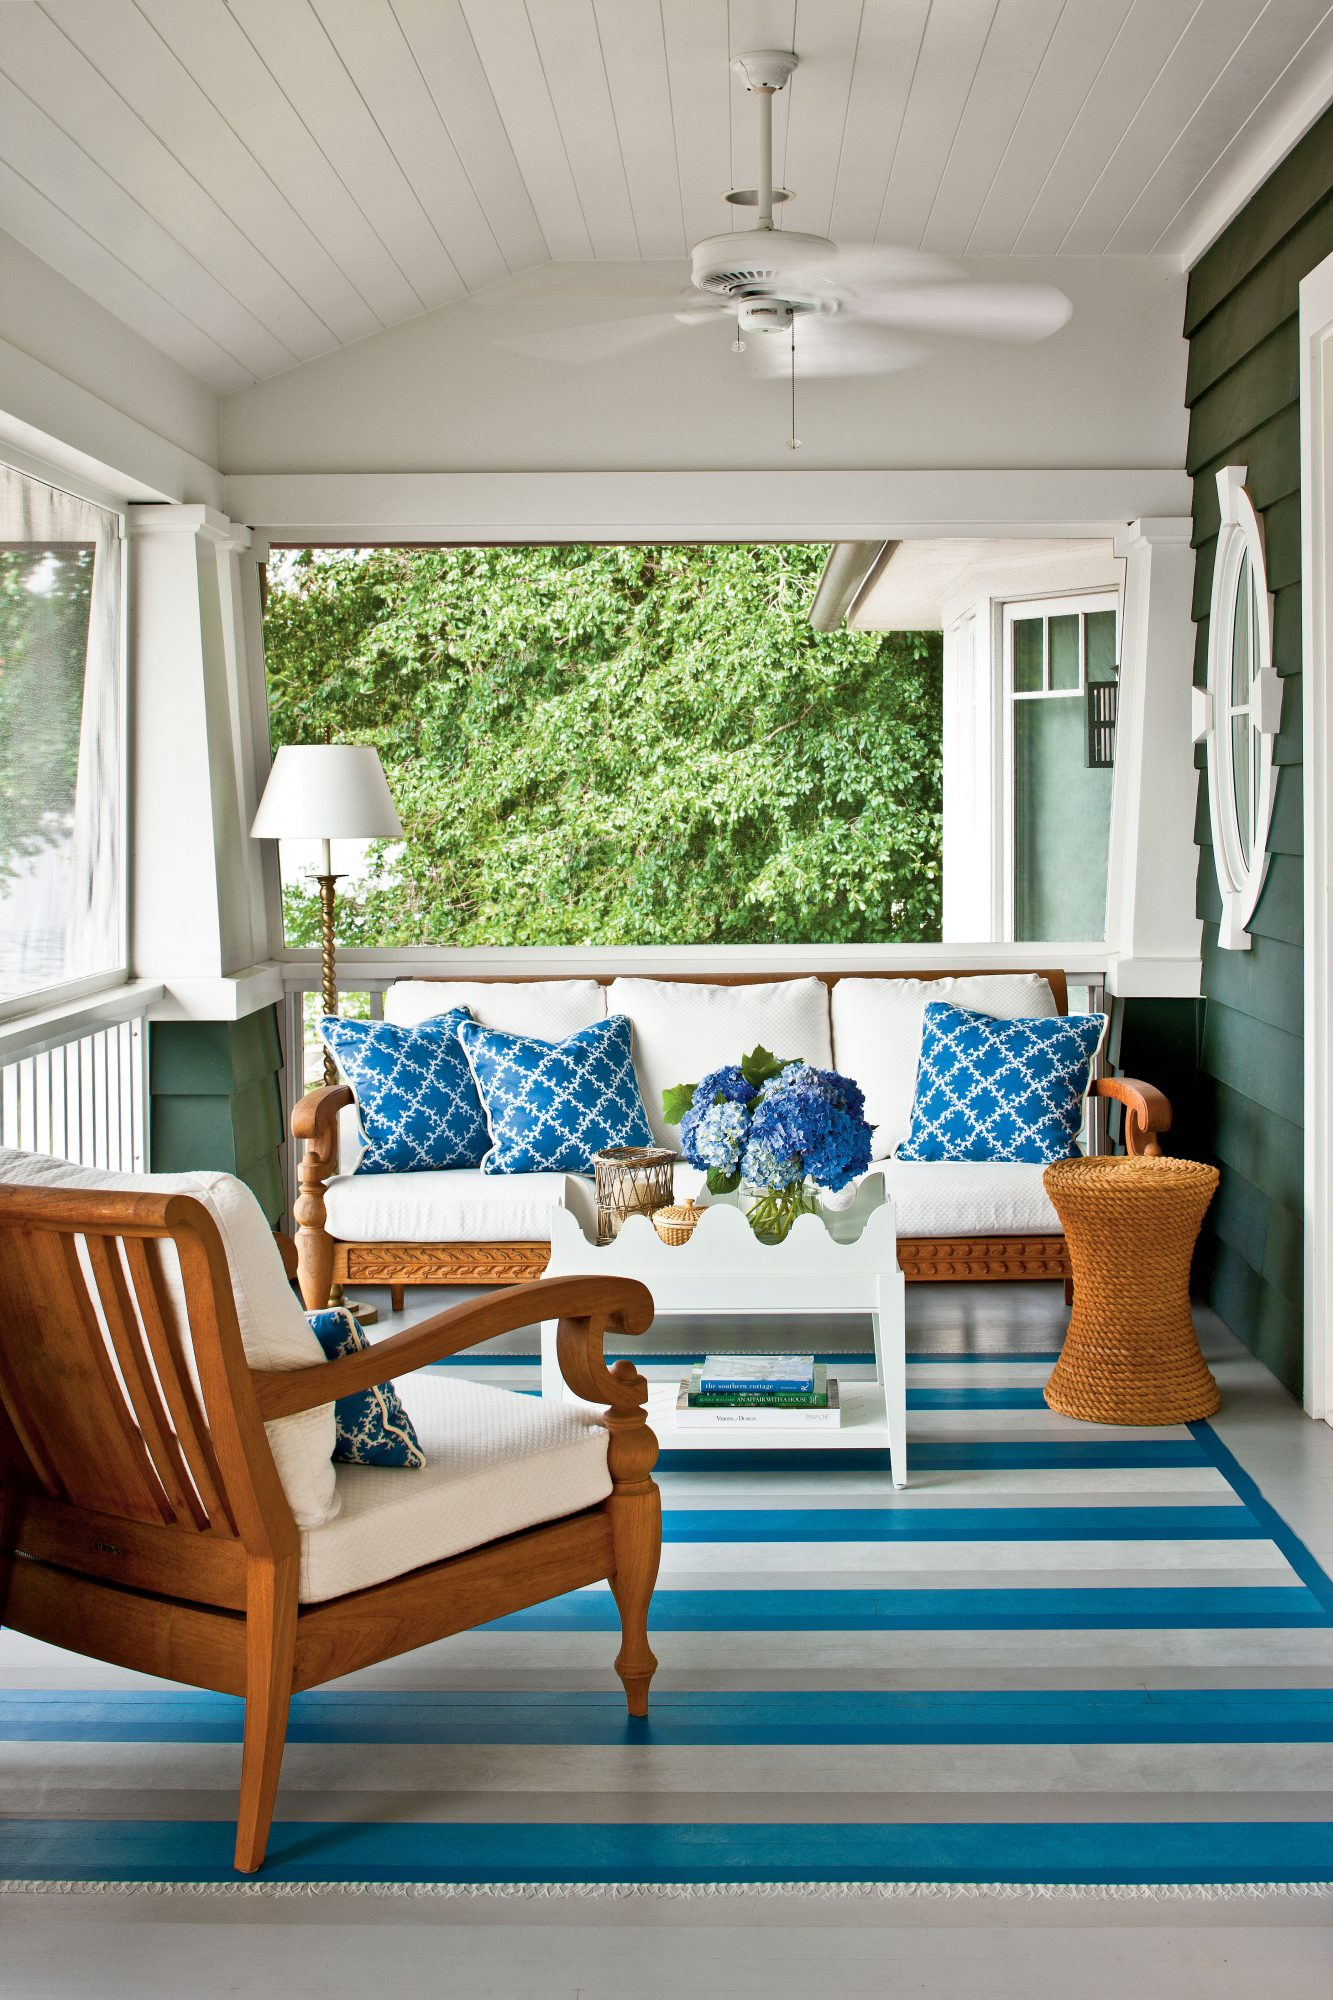 Outdoor Decorating Trends That Will Be In for Summer